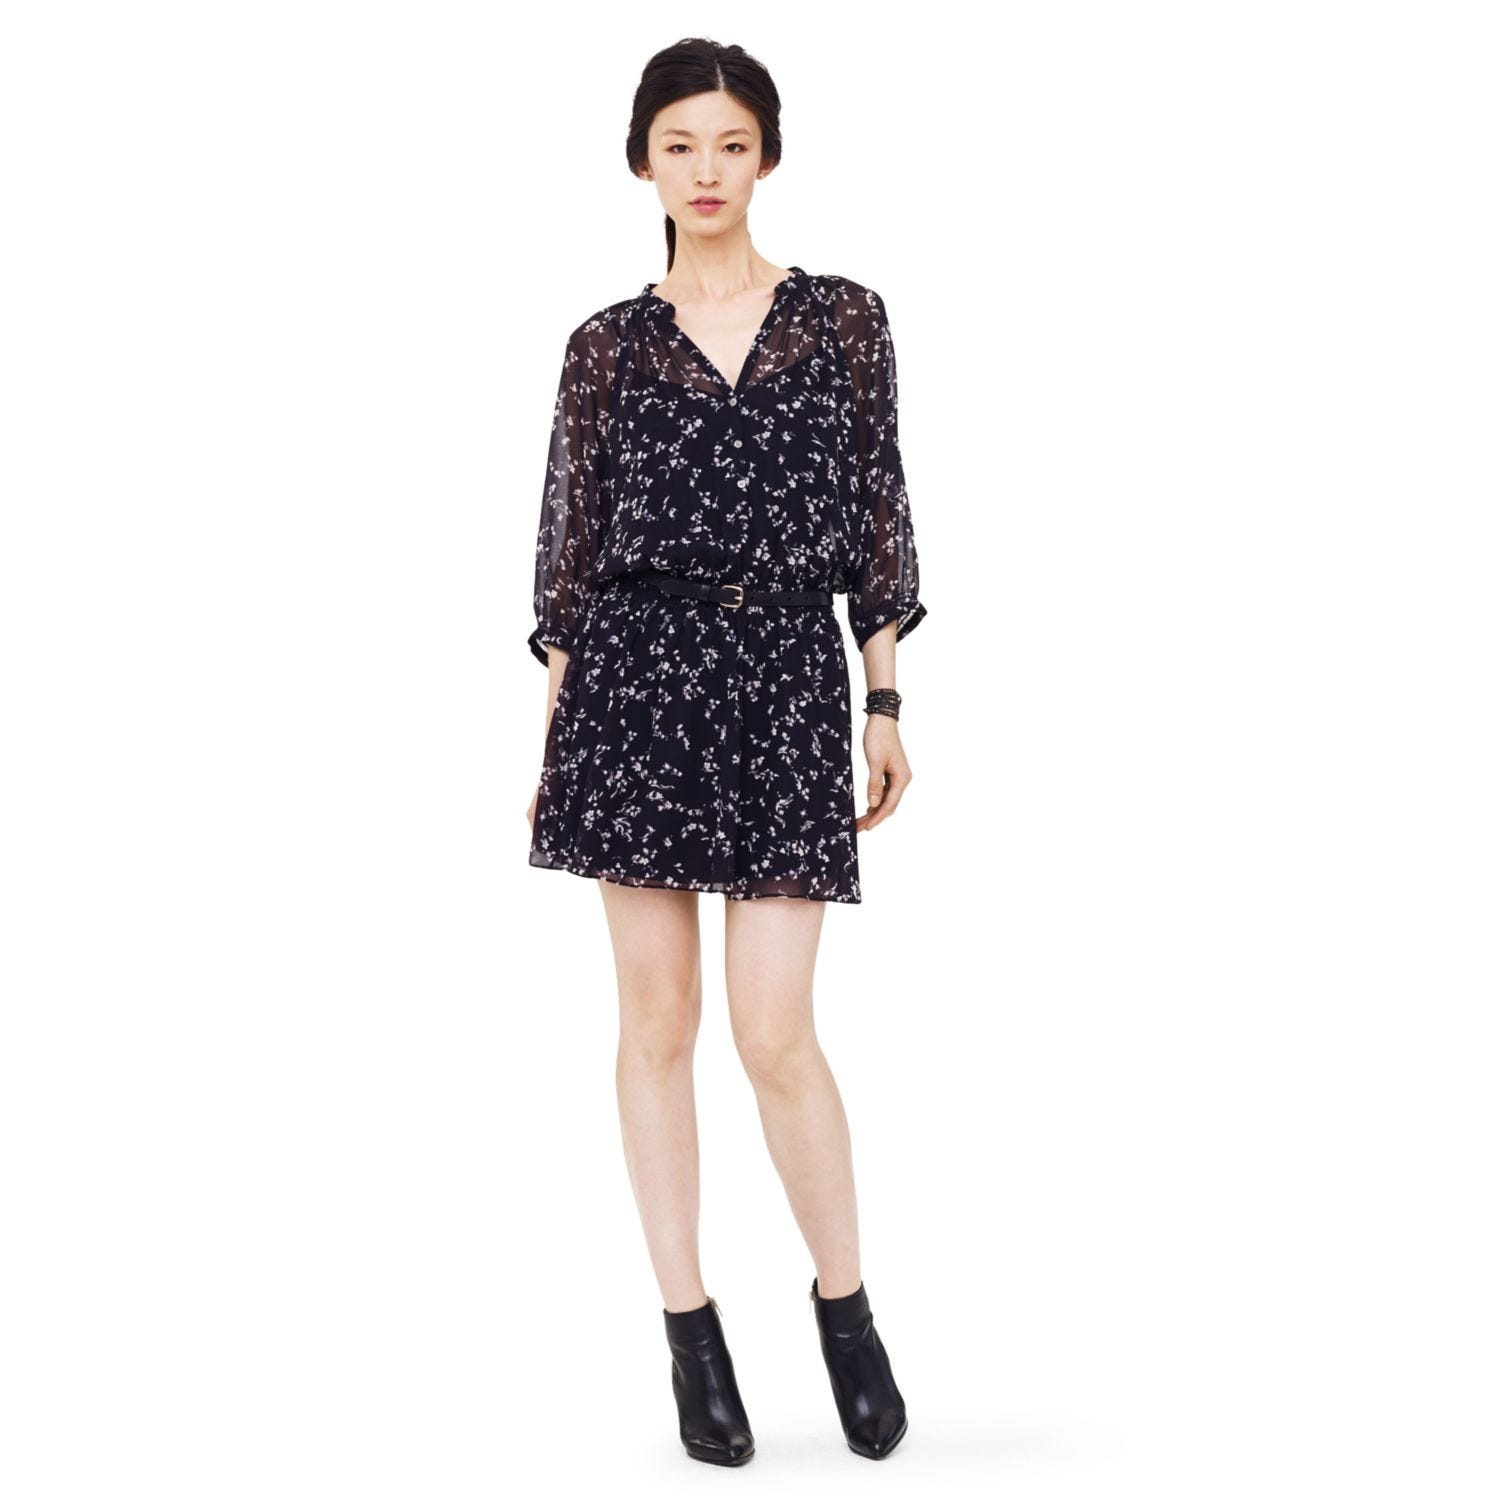 5ef24a9009 Clothing Student Discounts — Ann Taylor